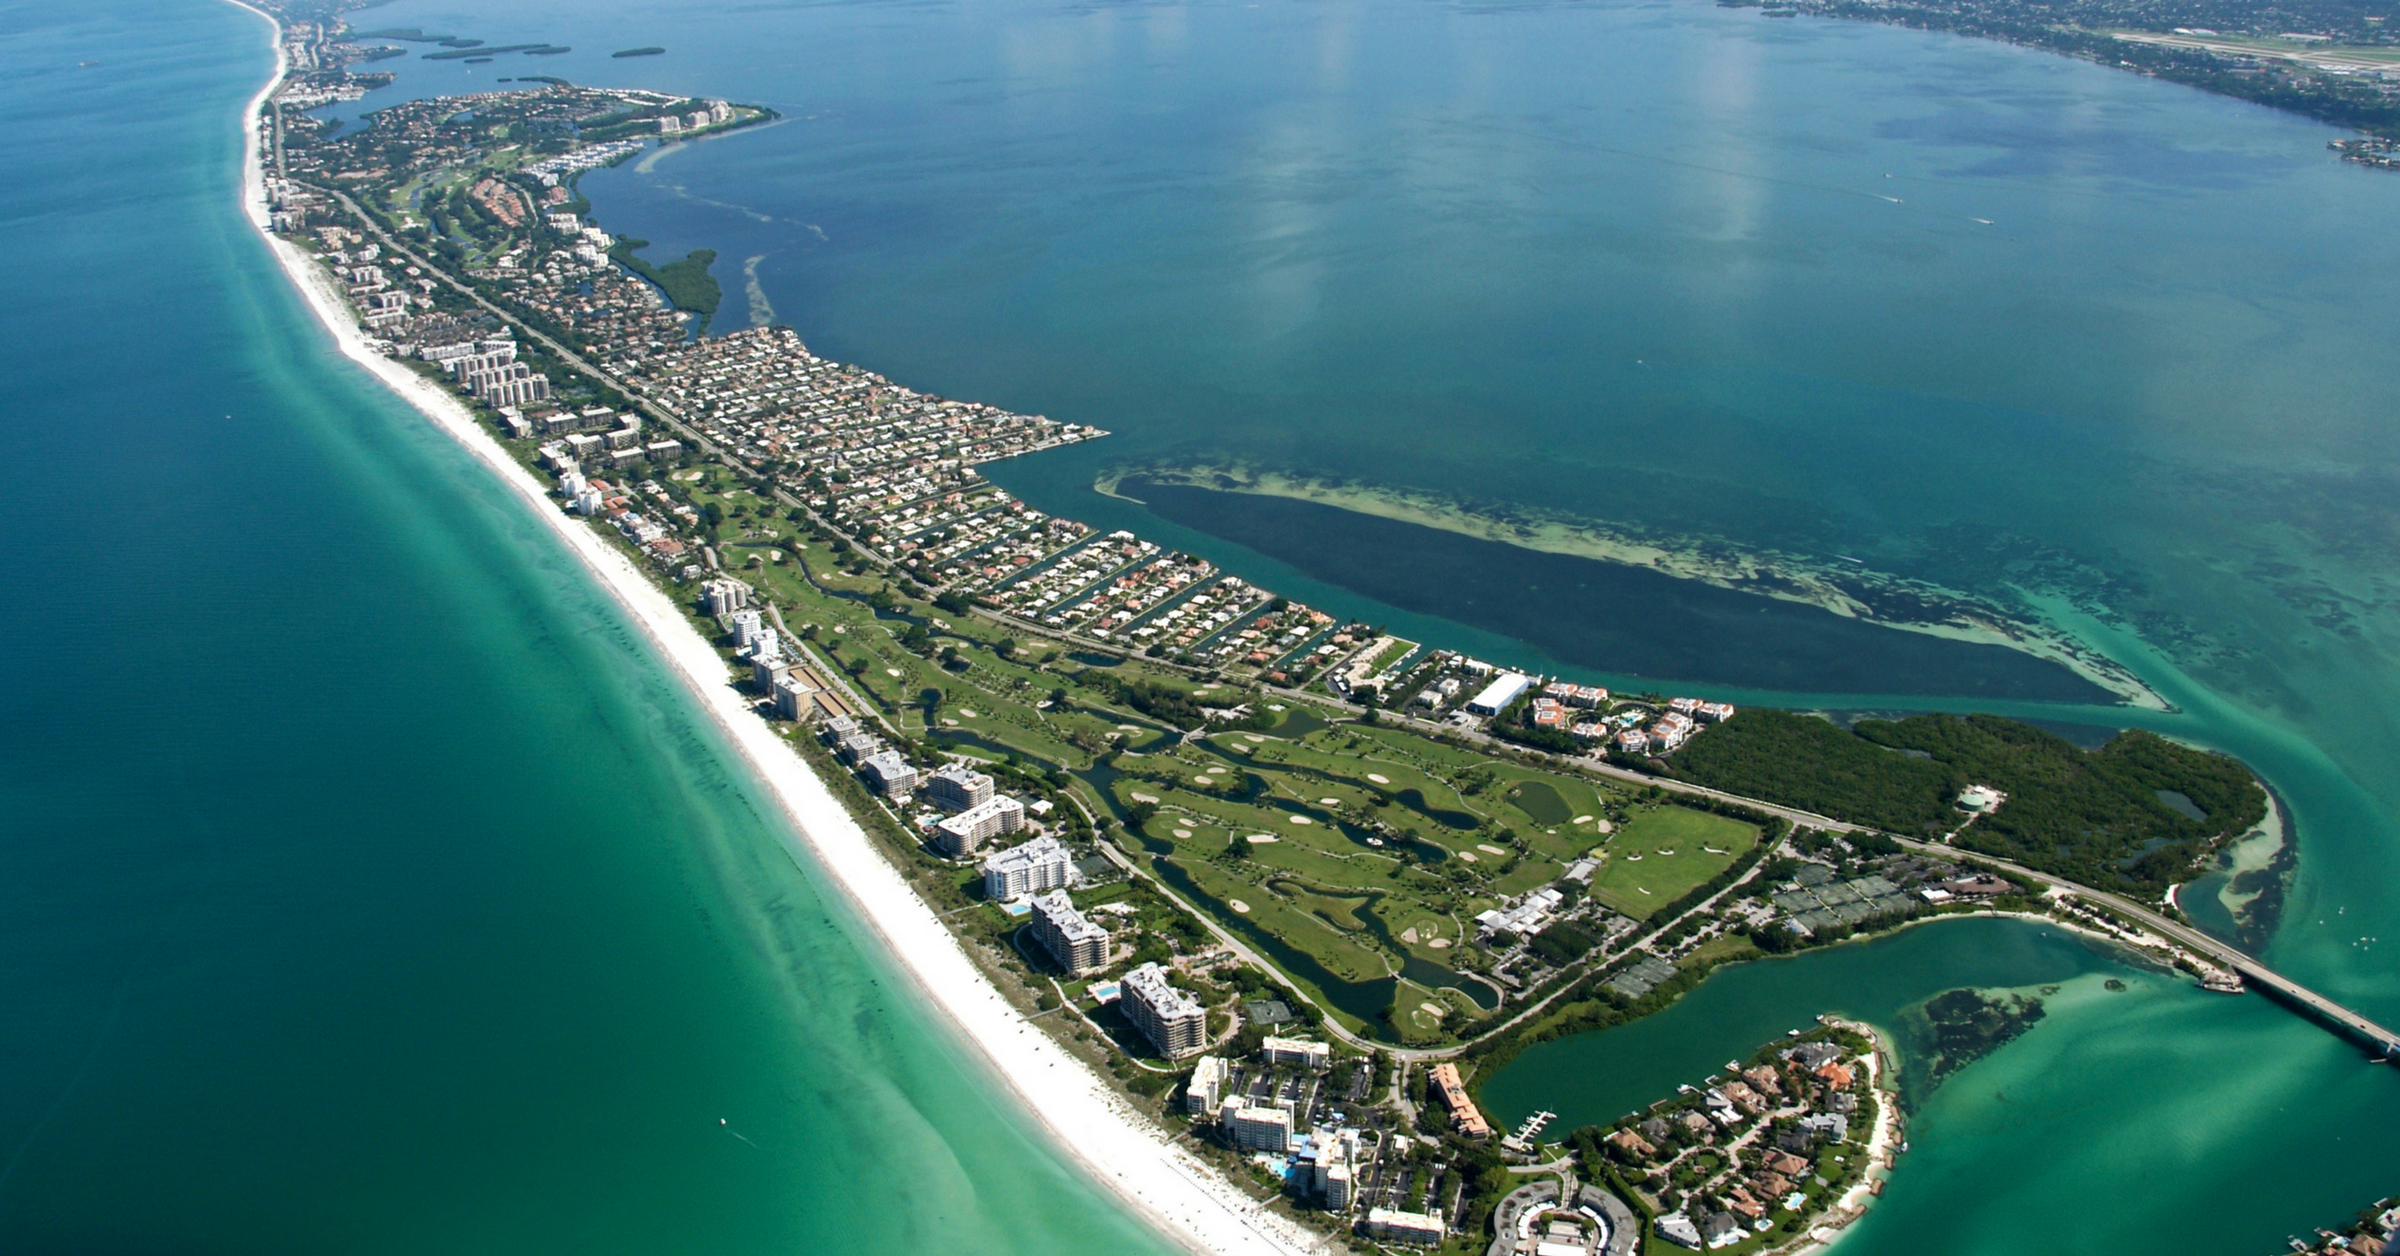 Cruising Florida's West Coast: Tying up in Longboat Key